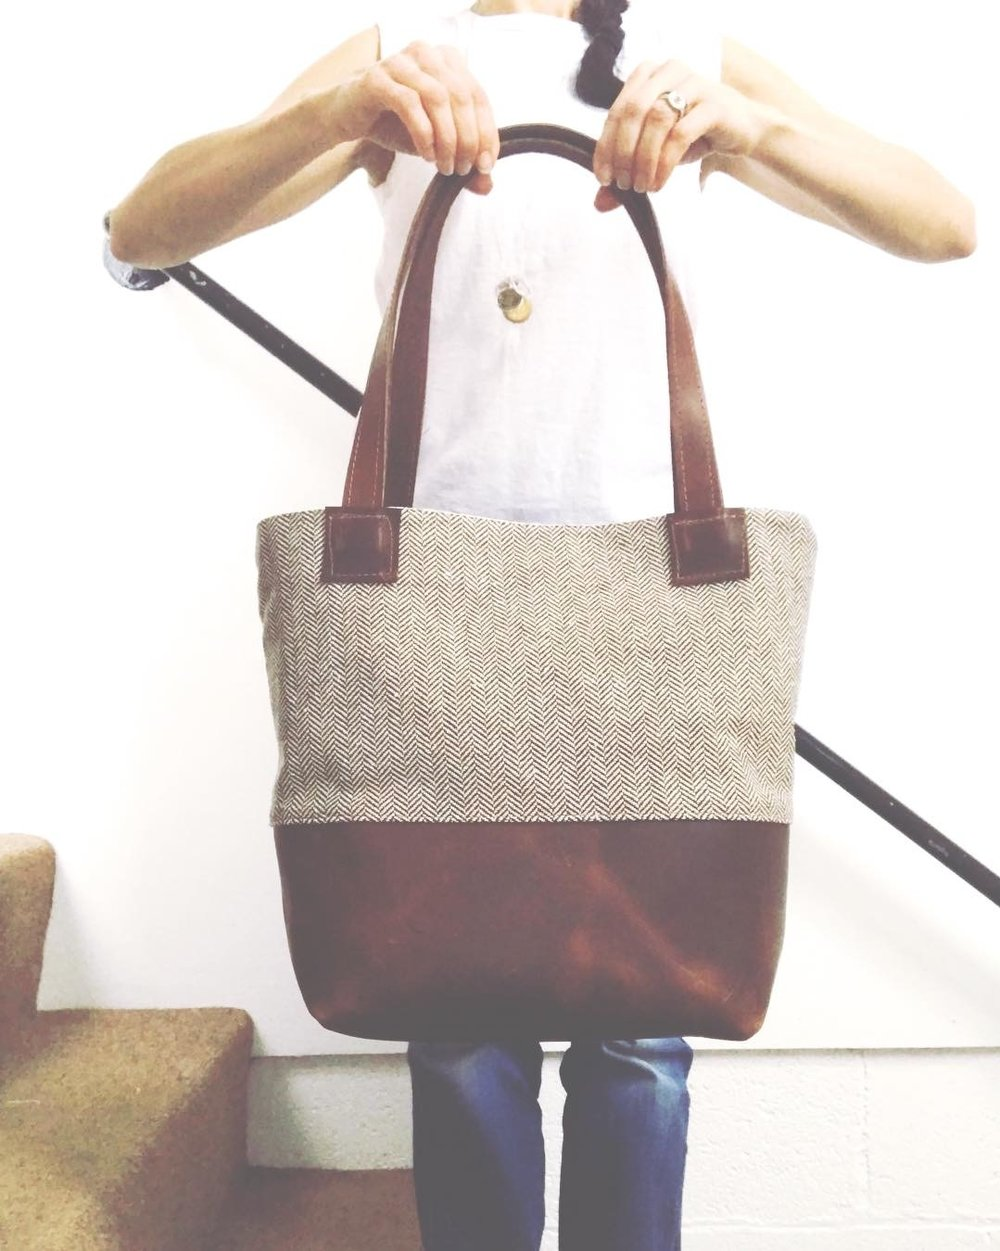 redefining designer fabric for your everyday life - one bag at a time….